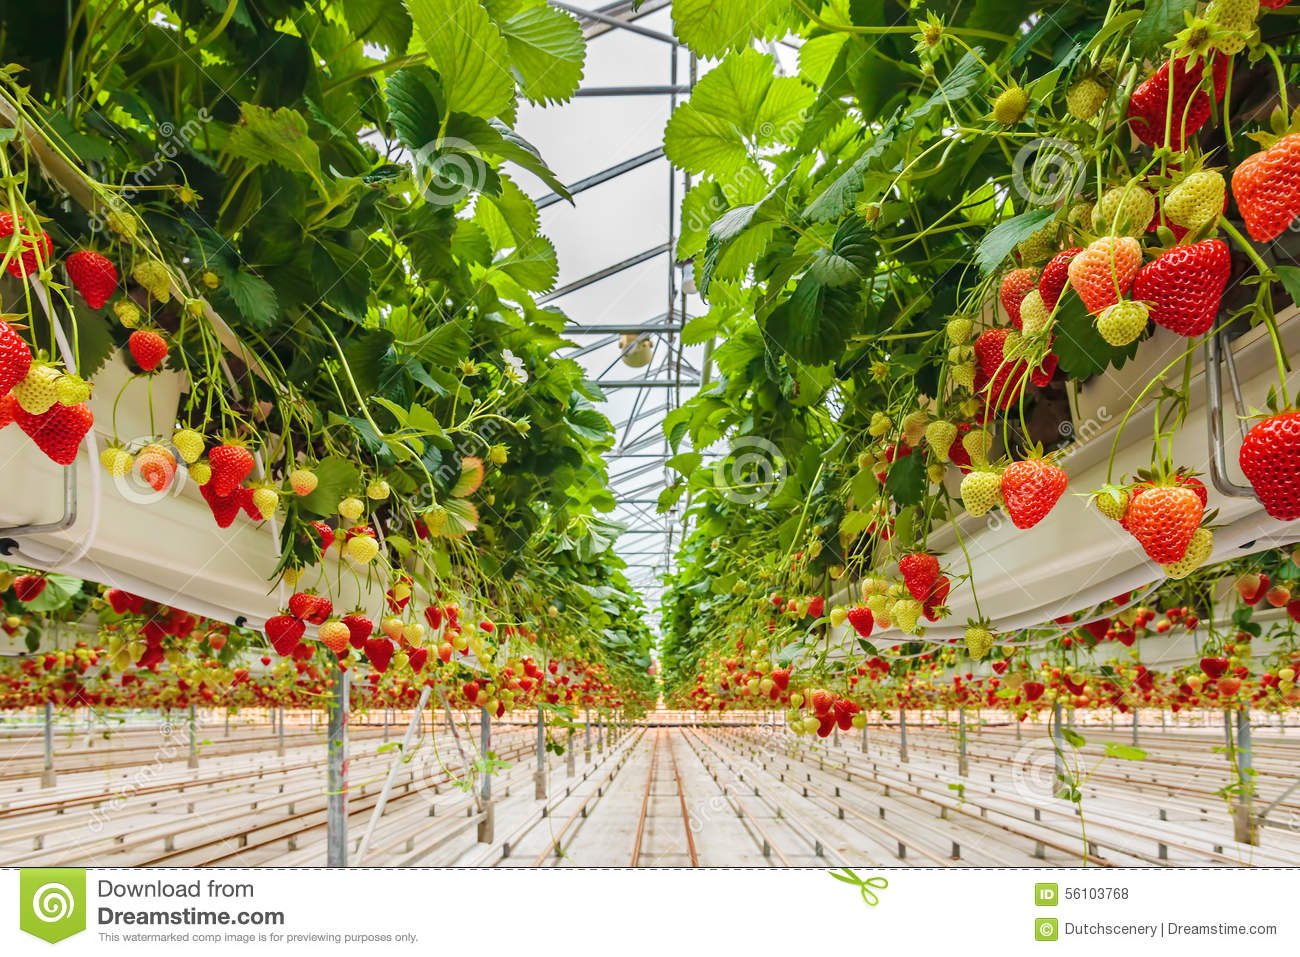 Strawberries Growing In A Greenhouse Stock Photo Image